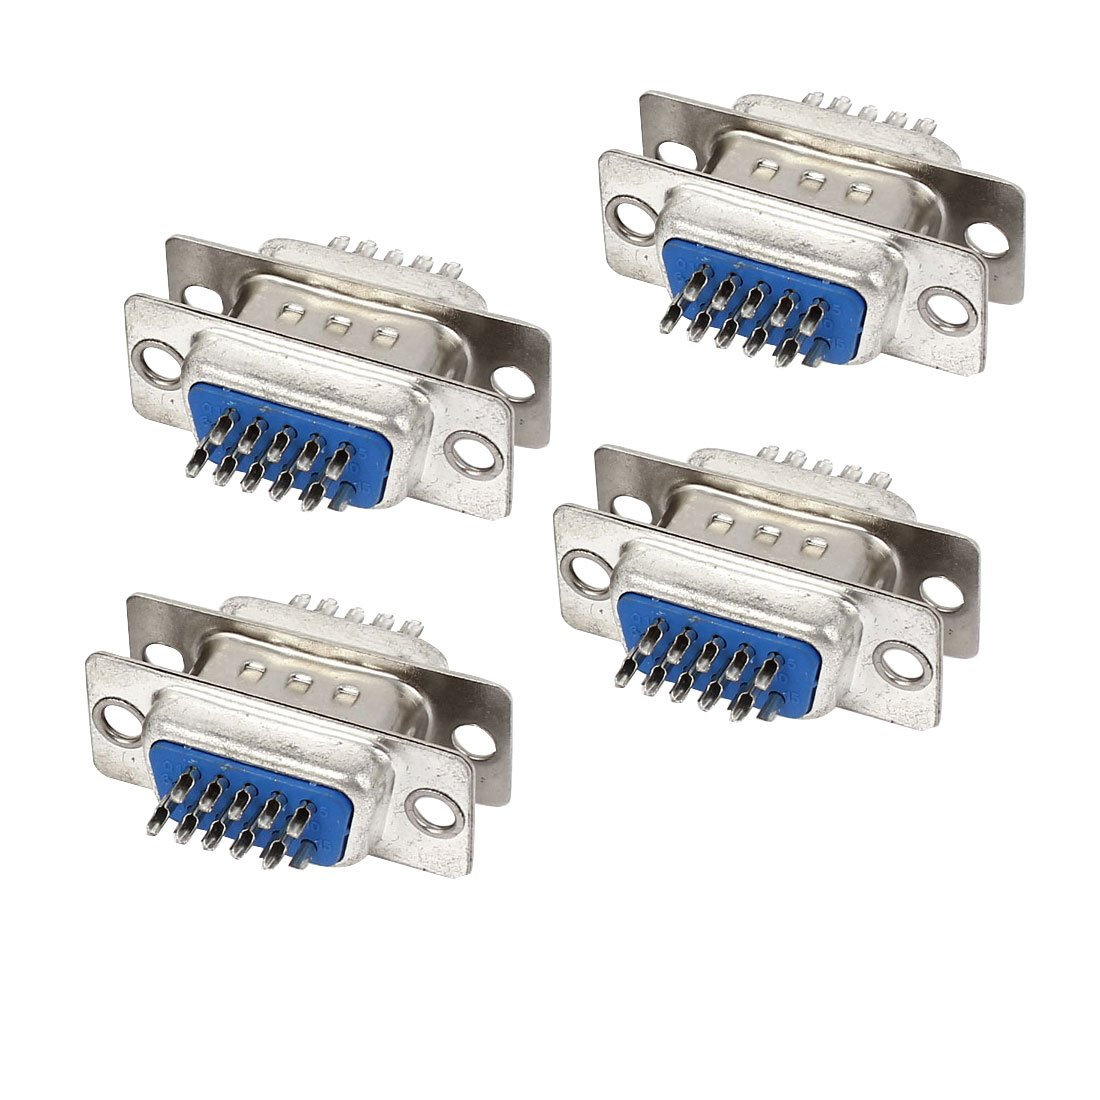 uxcell DB15 15-Pin 3-Row Male to Female Connector VGA Cable Adapter 8Pcs a15011200ux0079